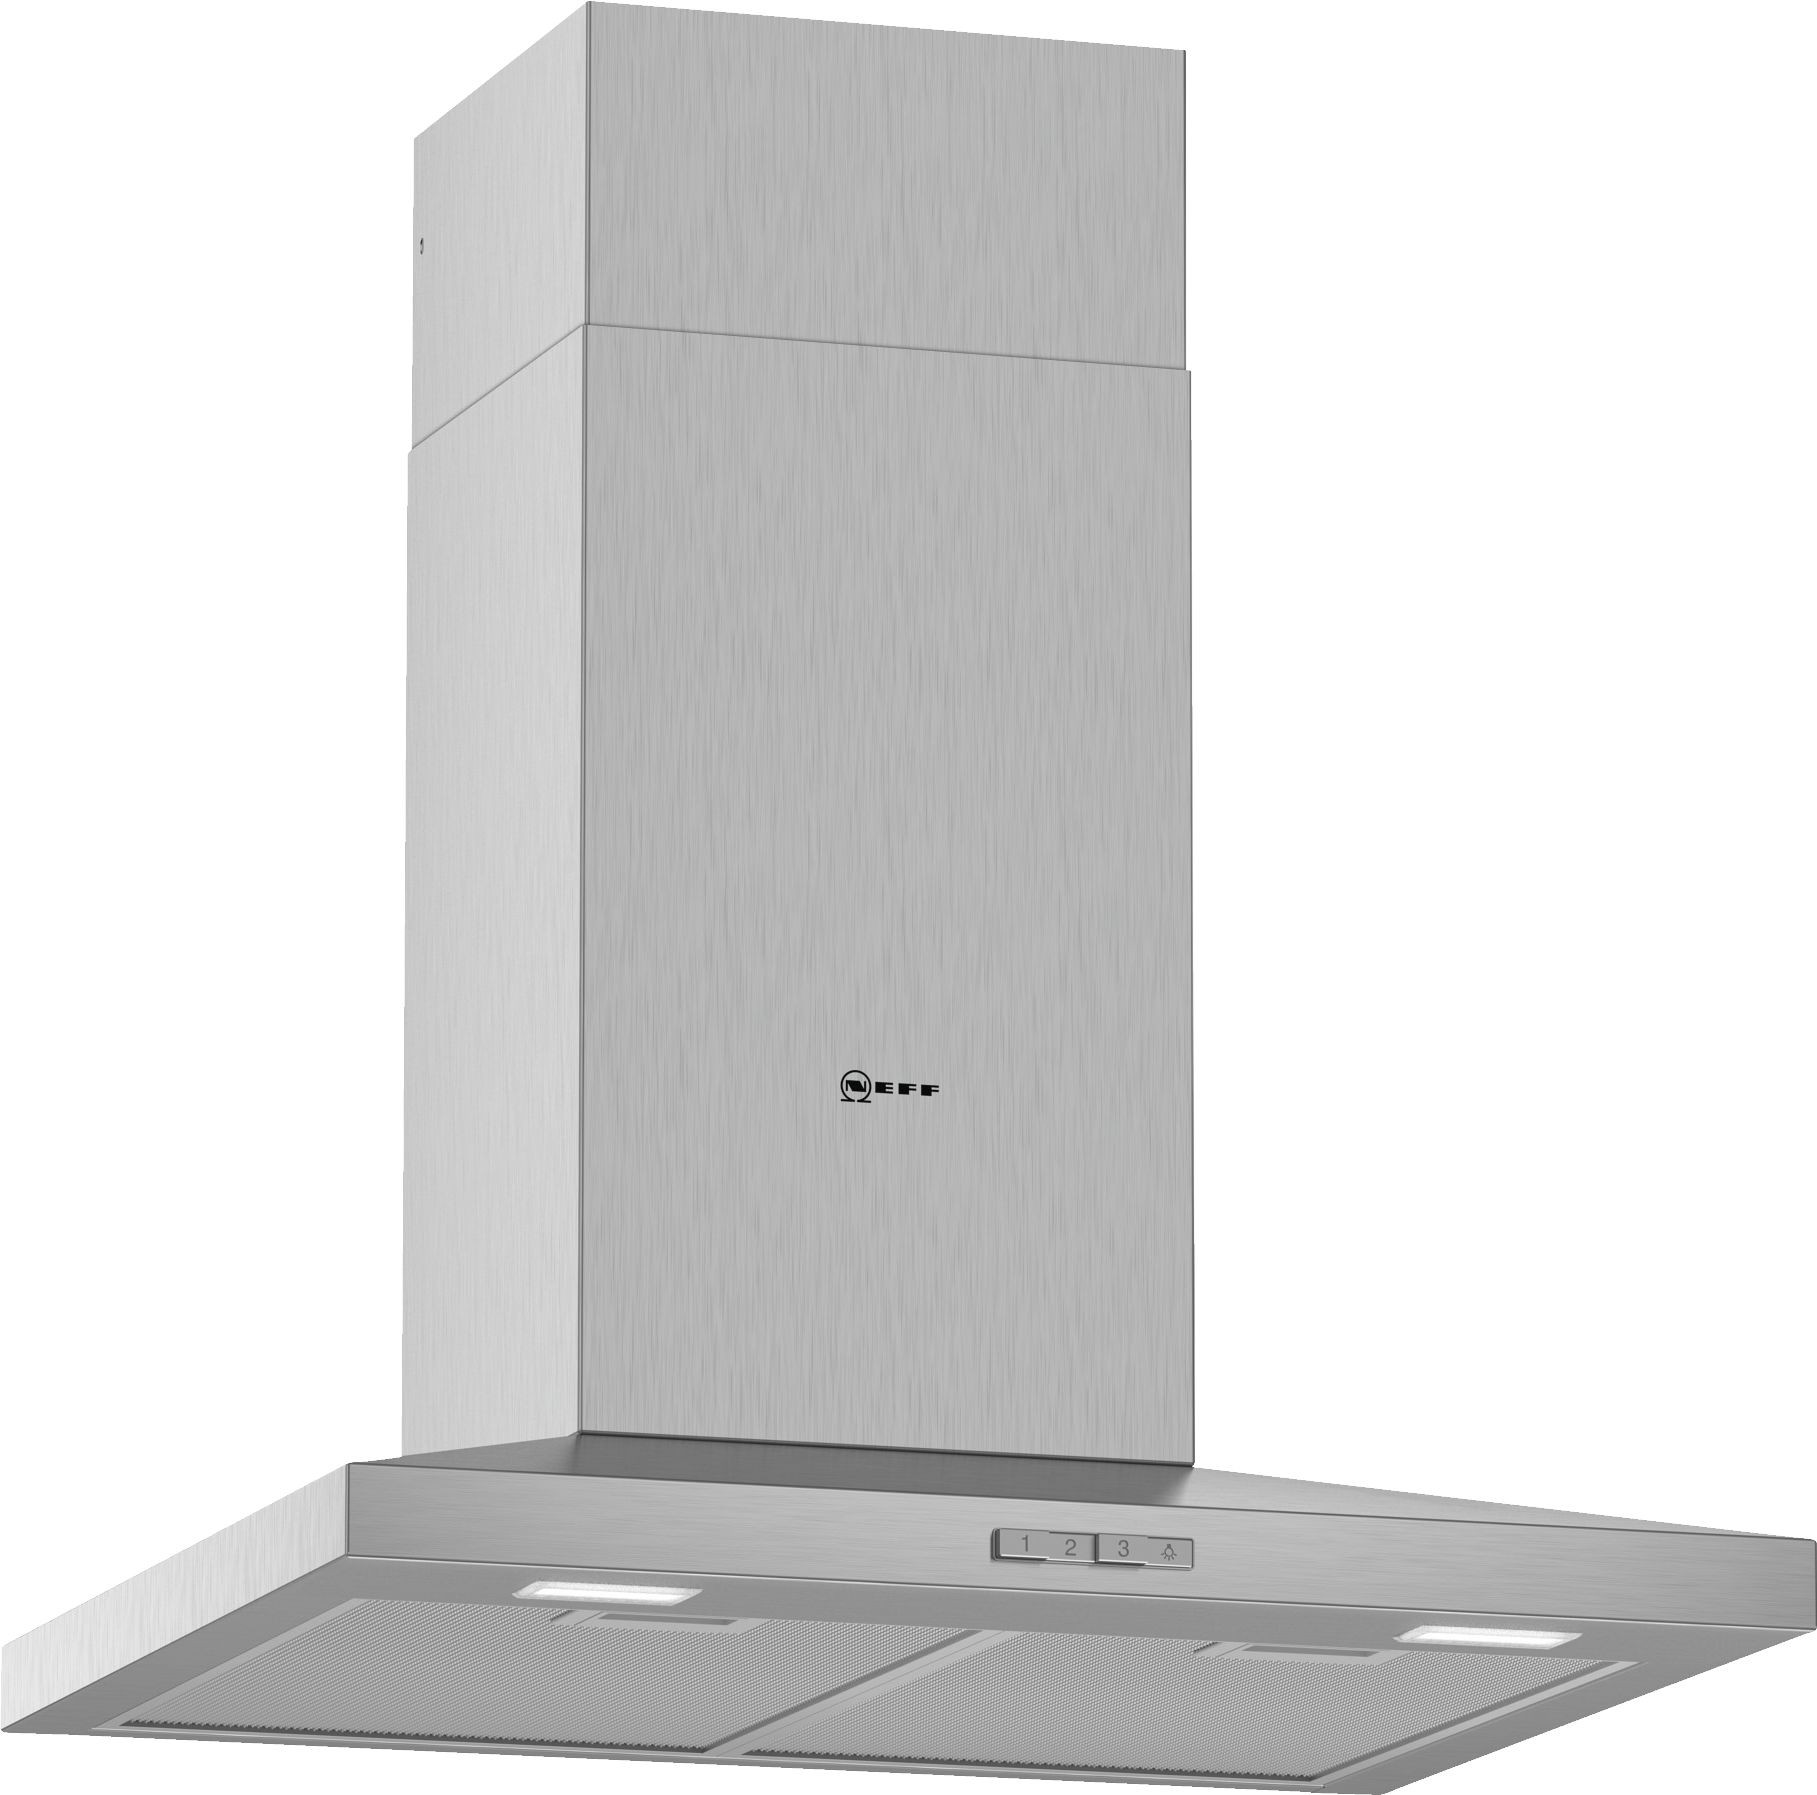 Neff N30 60cm Stainless Steel Slim Pyramid Chimney Hood D62QBC0N0B